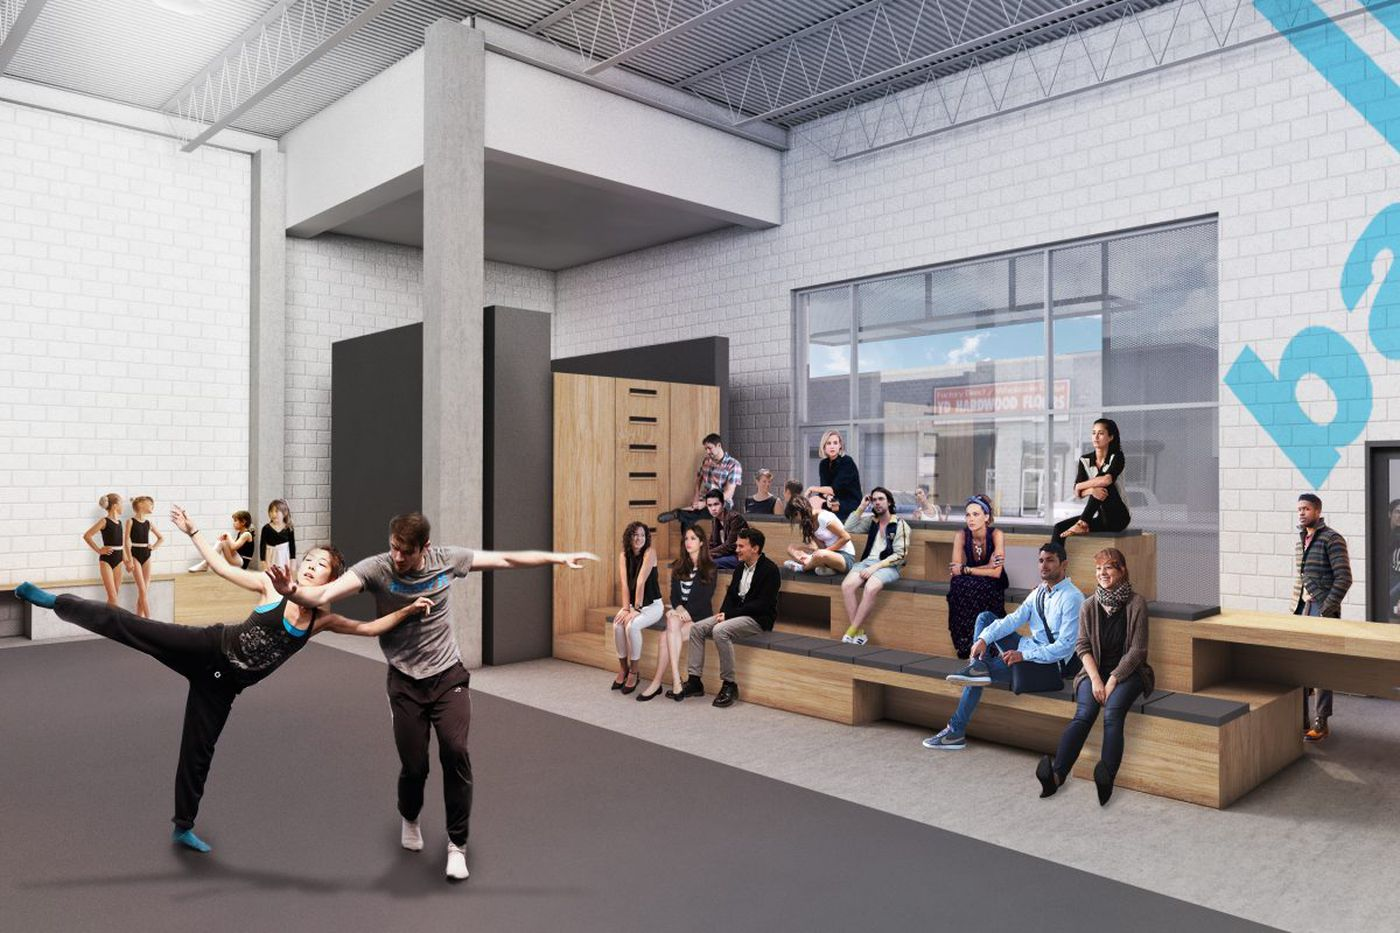 BalletX breaks ground today in South Philly for a new studio, with more community outreach to come